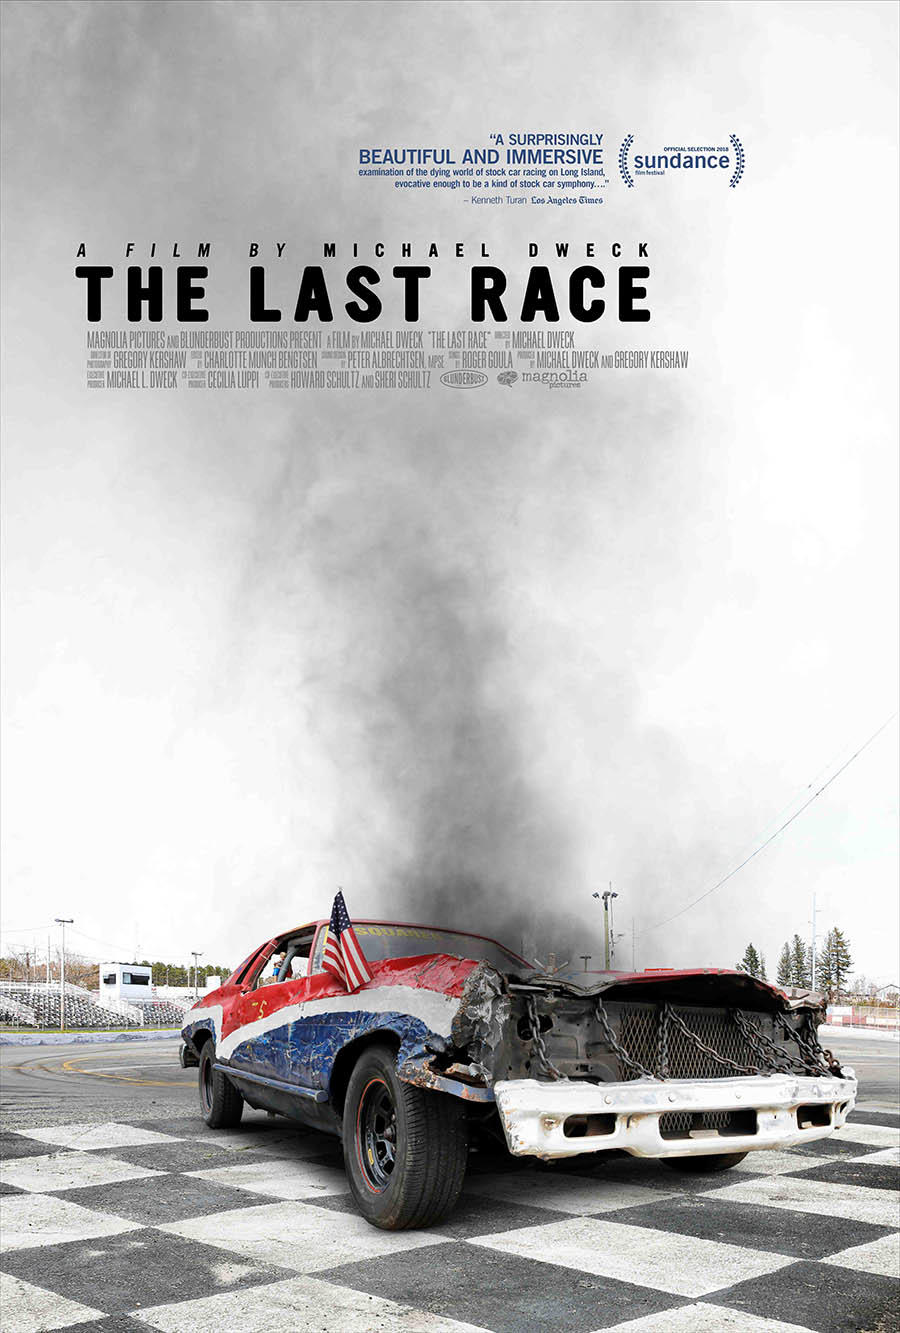 The Last Race poster art